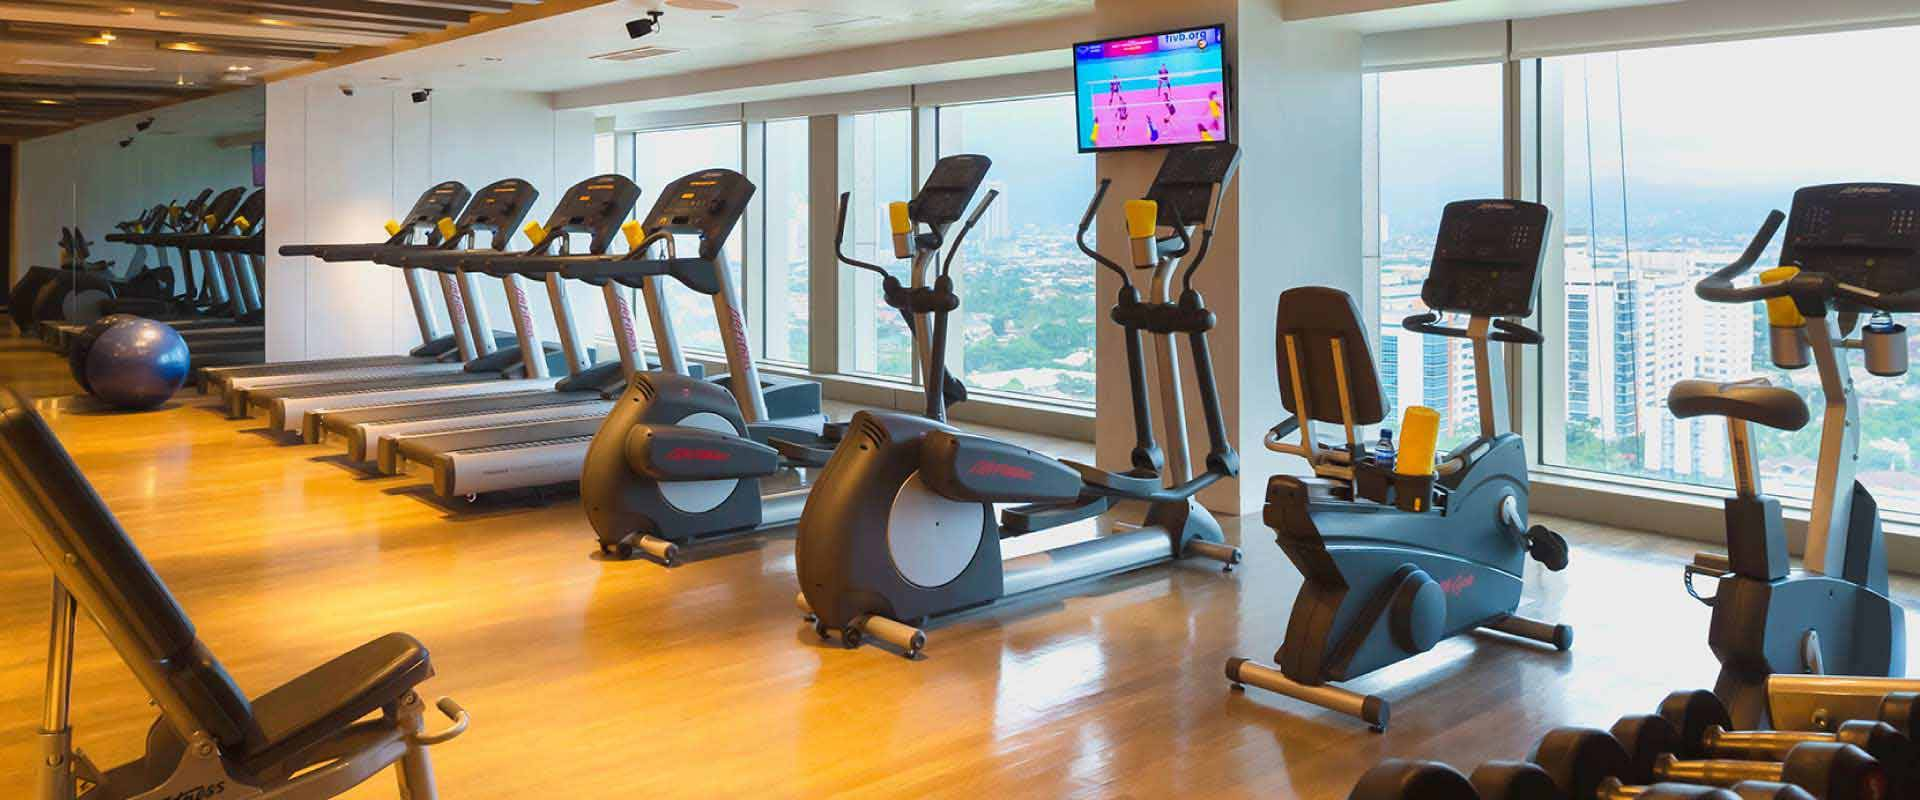 Fully-equipped fitness facilities